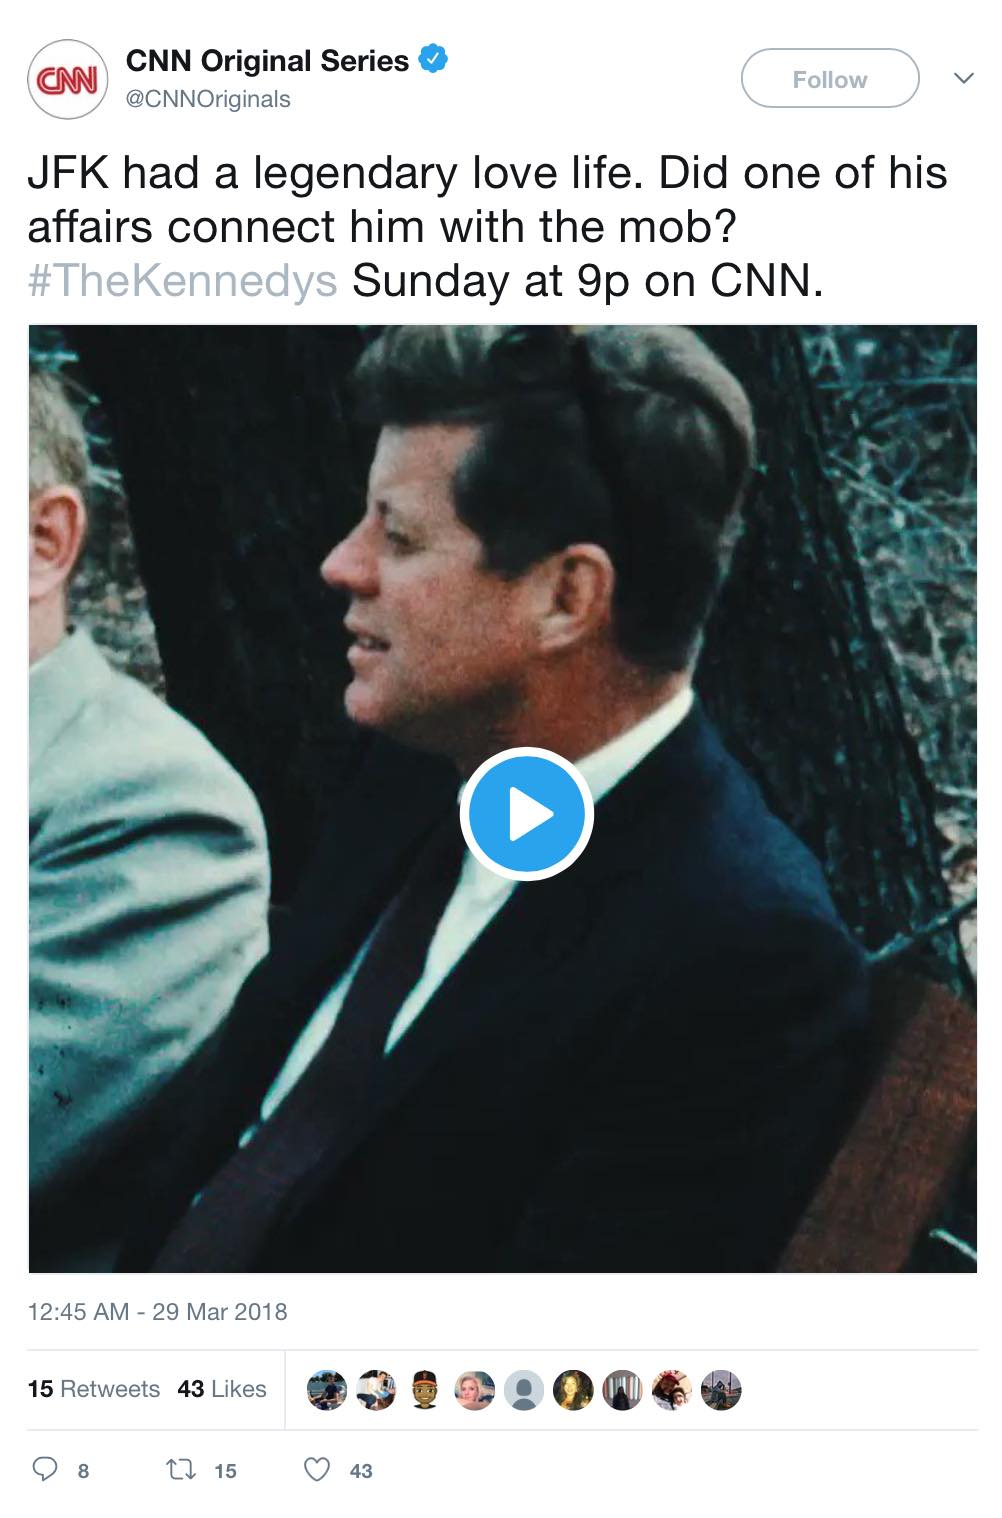 JFKlegendaryLoverTweetCNN032918